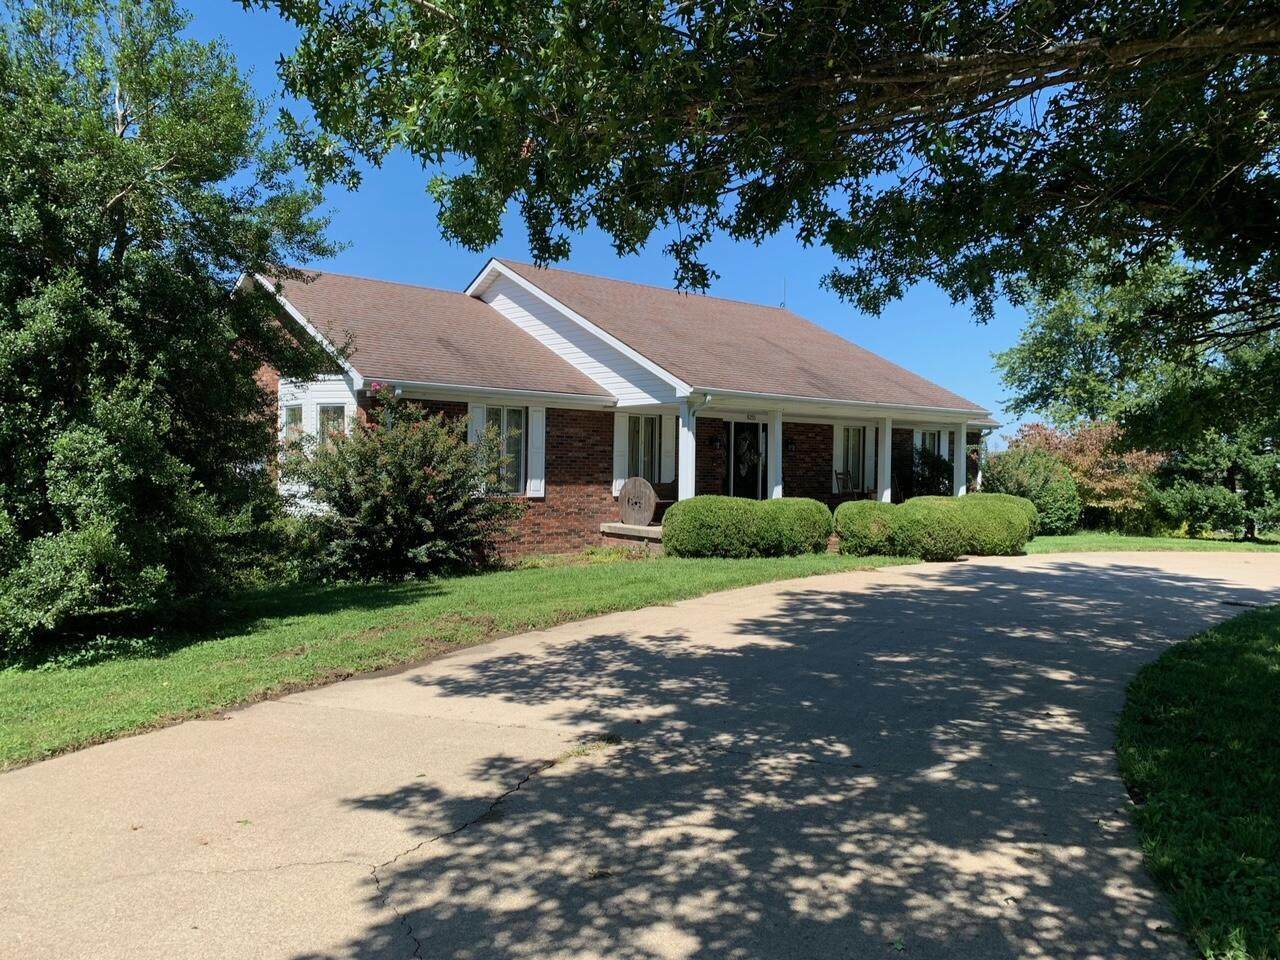 8255 Ky Hwy 1247 - Photo 1